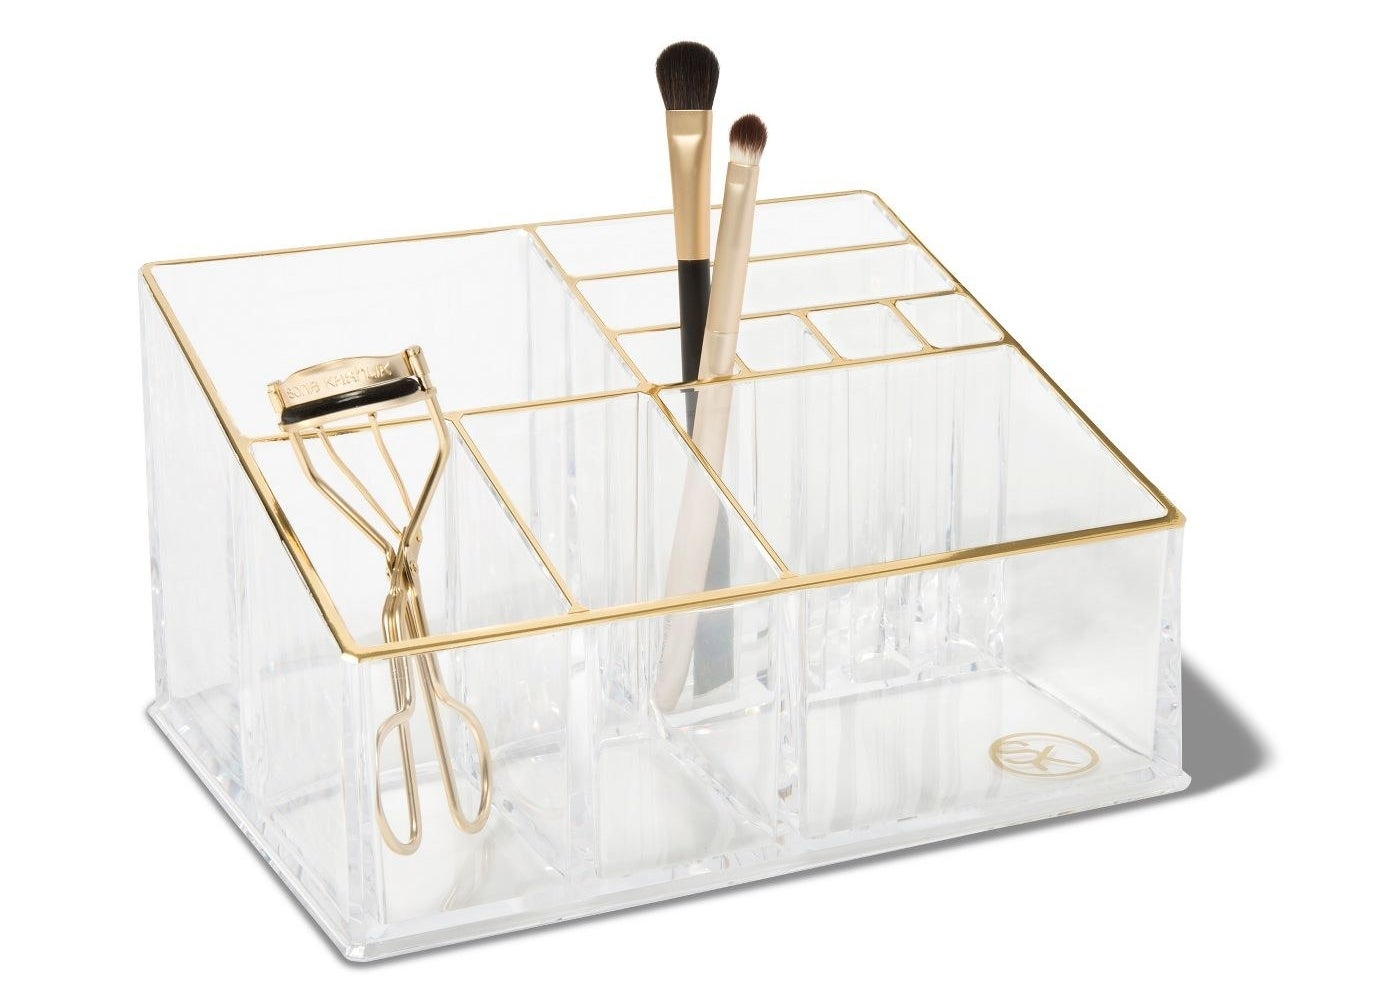 The makeup tray organizer